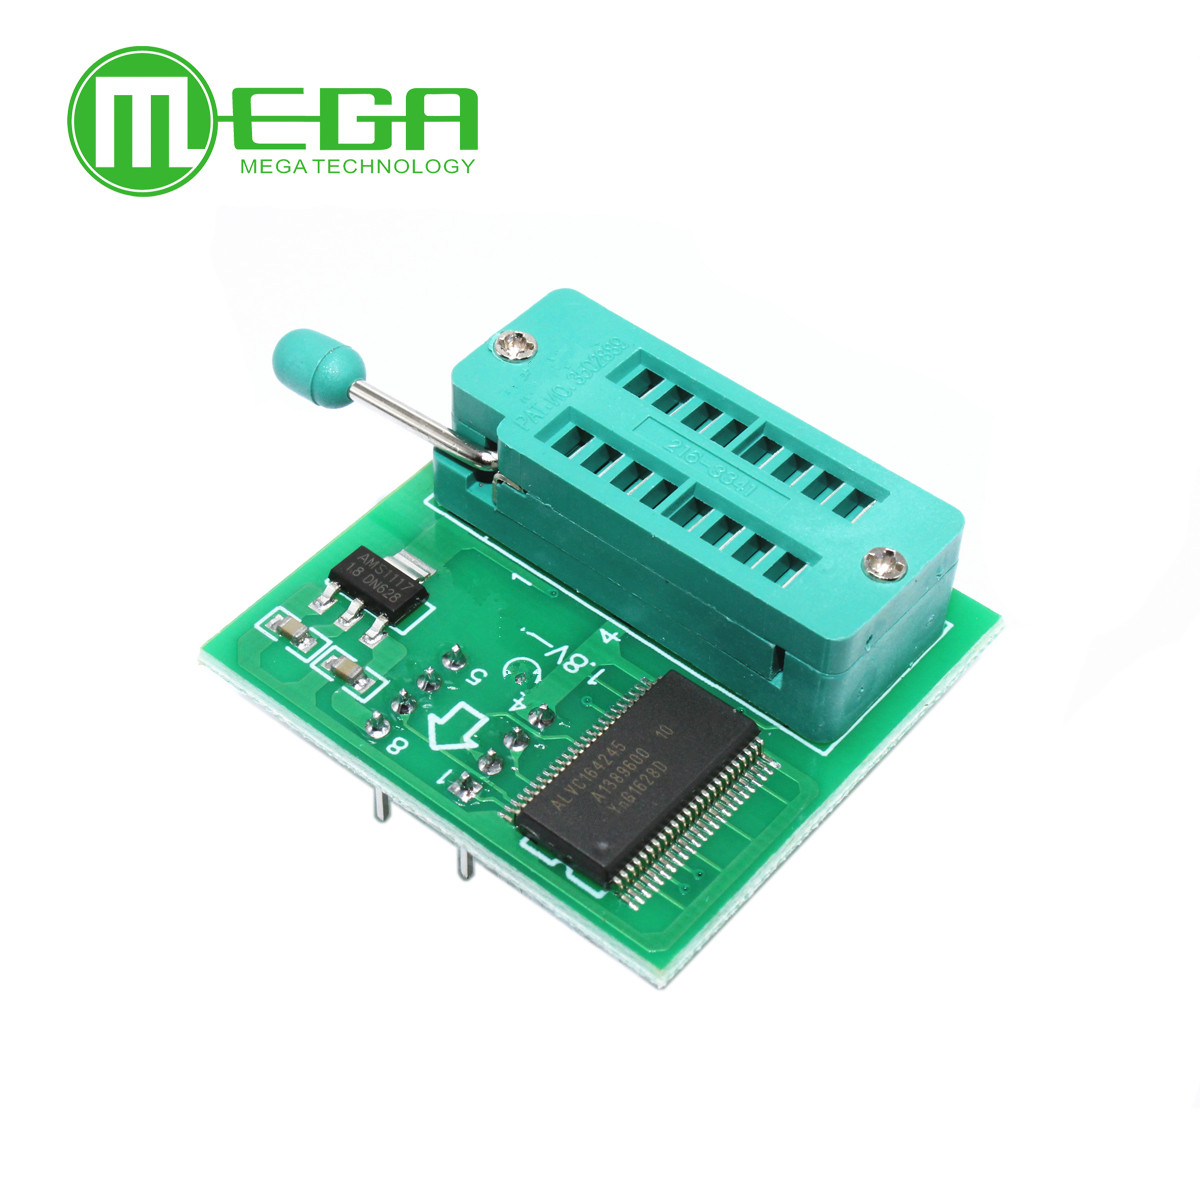 <font><b>1.8V</b></font> <font><b>adapter</b></font> for motherboard <font><b>1.8V</b></font> <font><b>SPI</b></font> <font><b>Flash</b></font> SOP8 DIP8 W25 MX25 use on programmers TL866CS TL866A EZP2010 EZP2013 CH341 image